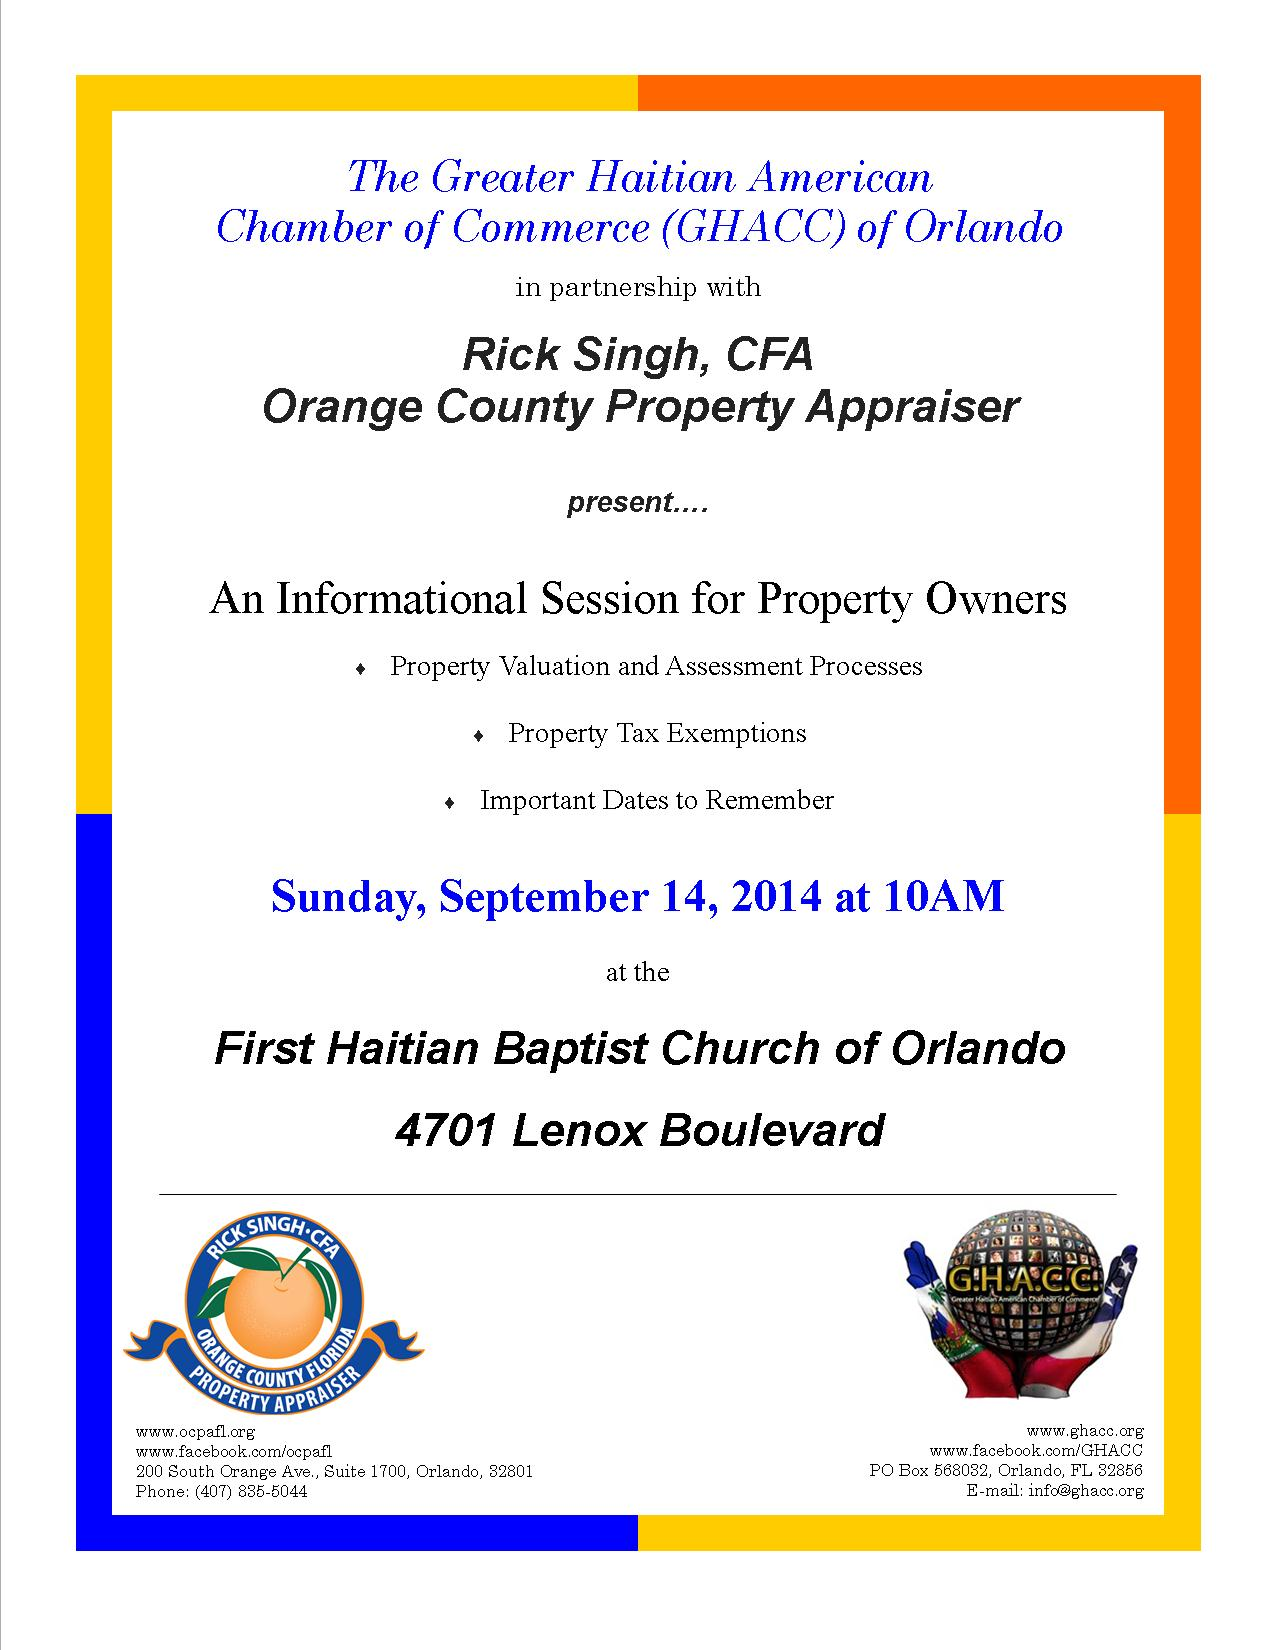 GHACC Orlando & Rick Singh, OCPA: An Informational Session for Property Owners